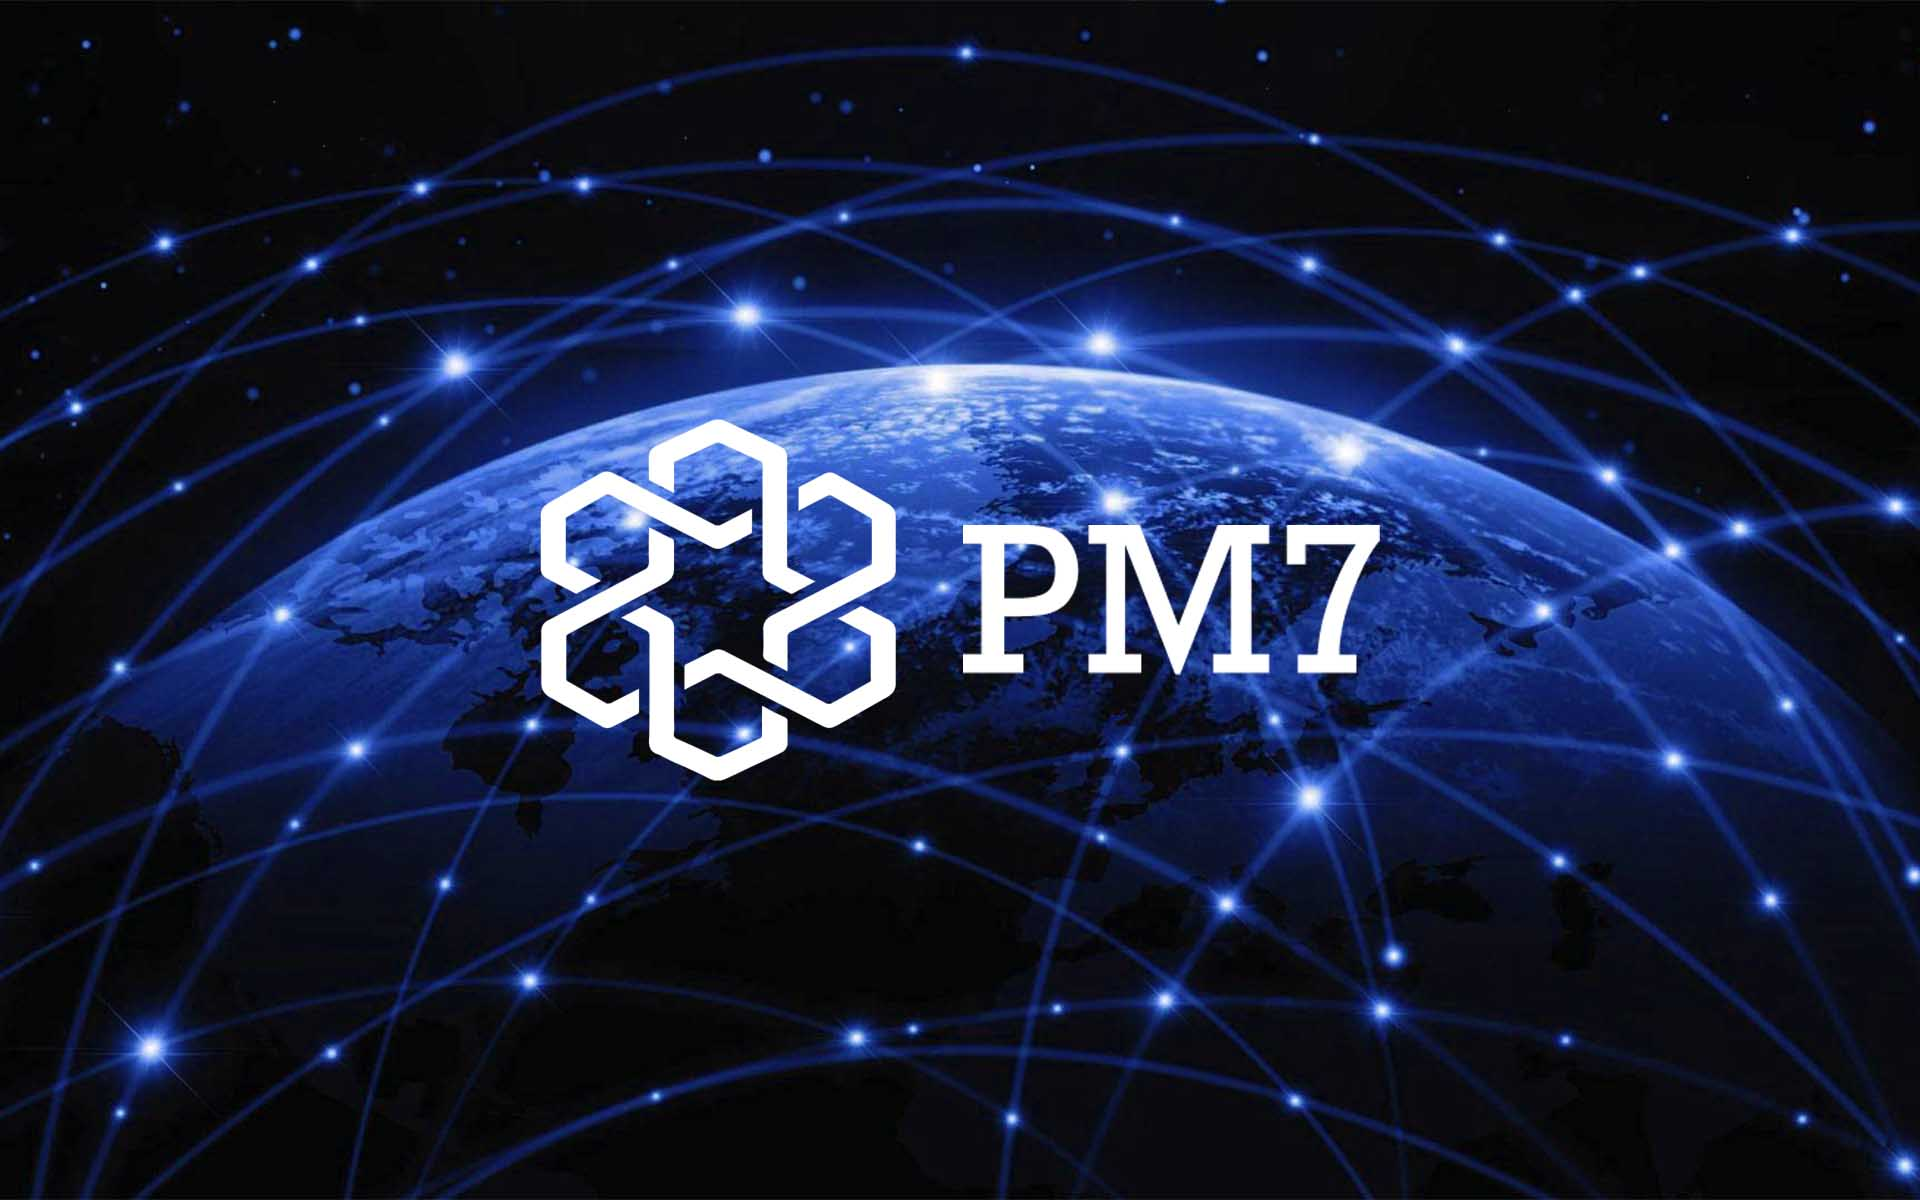 First-of-Its-Kind Affiliate Marketing Platform PM7 Leverages Blockchain Technology to Disrupt the World of Advertising